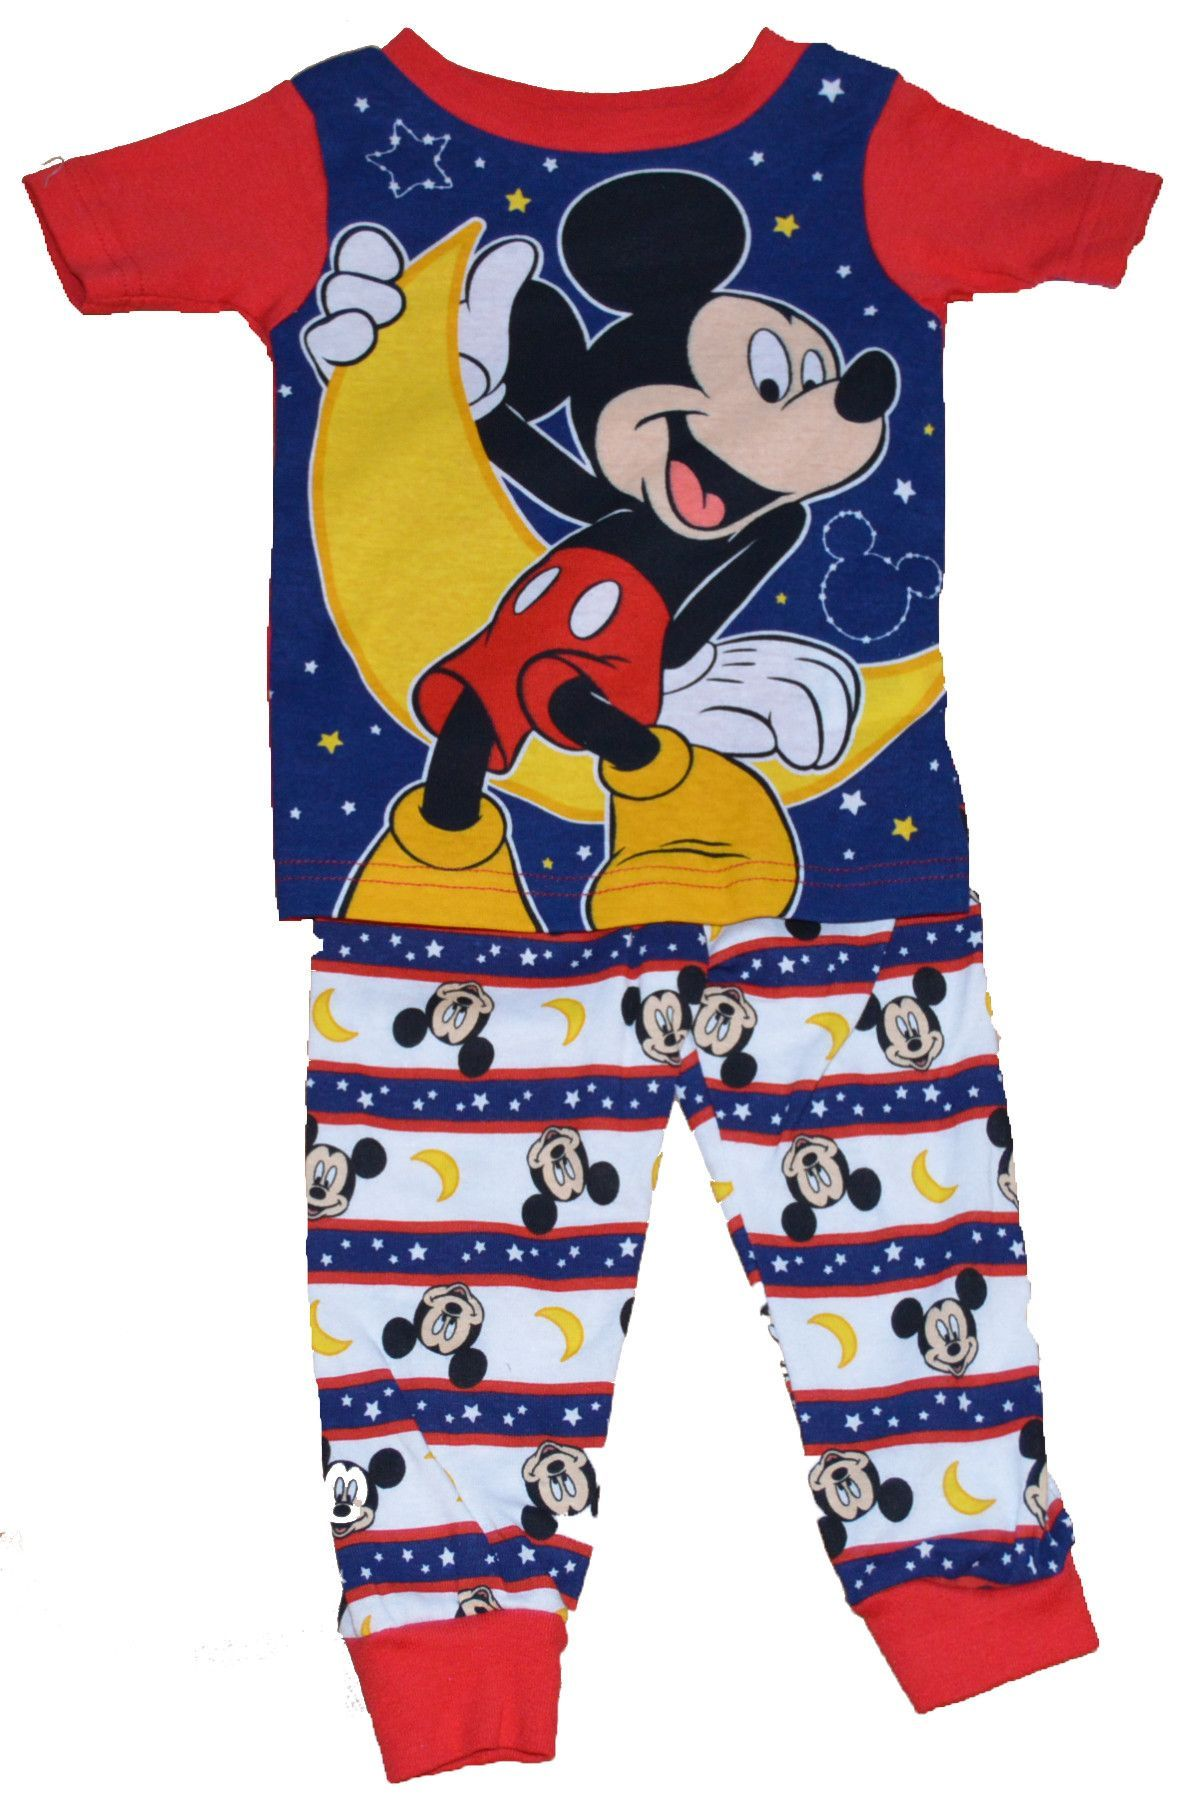 399c15766 Disney Mickey Mouse Star Moon Baby Toddler Boy Tight-fit 2 Piece ...